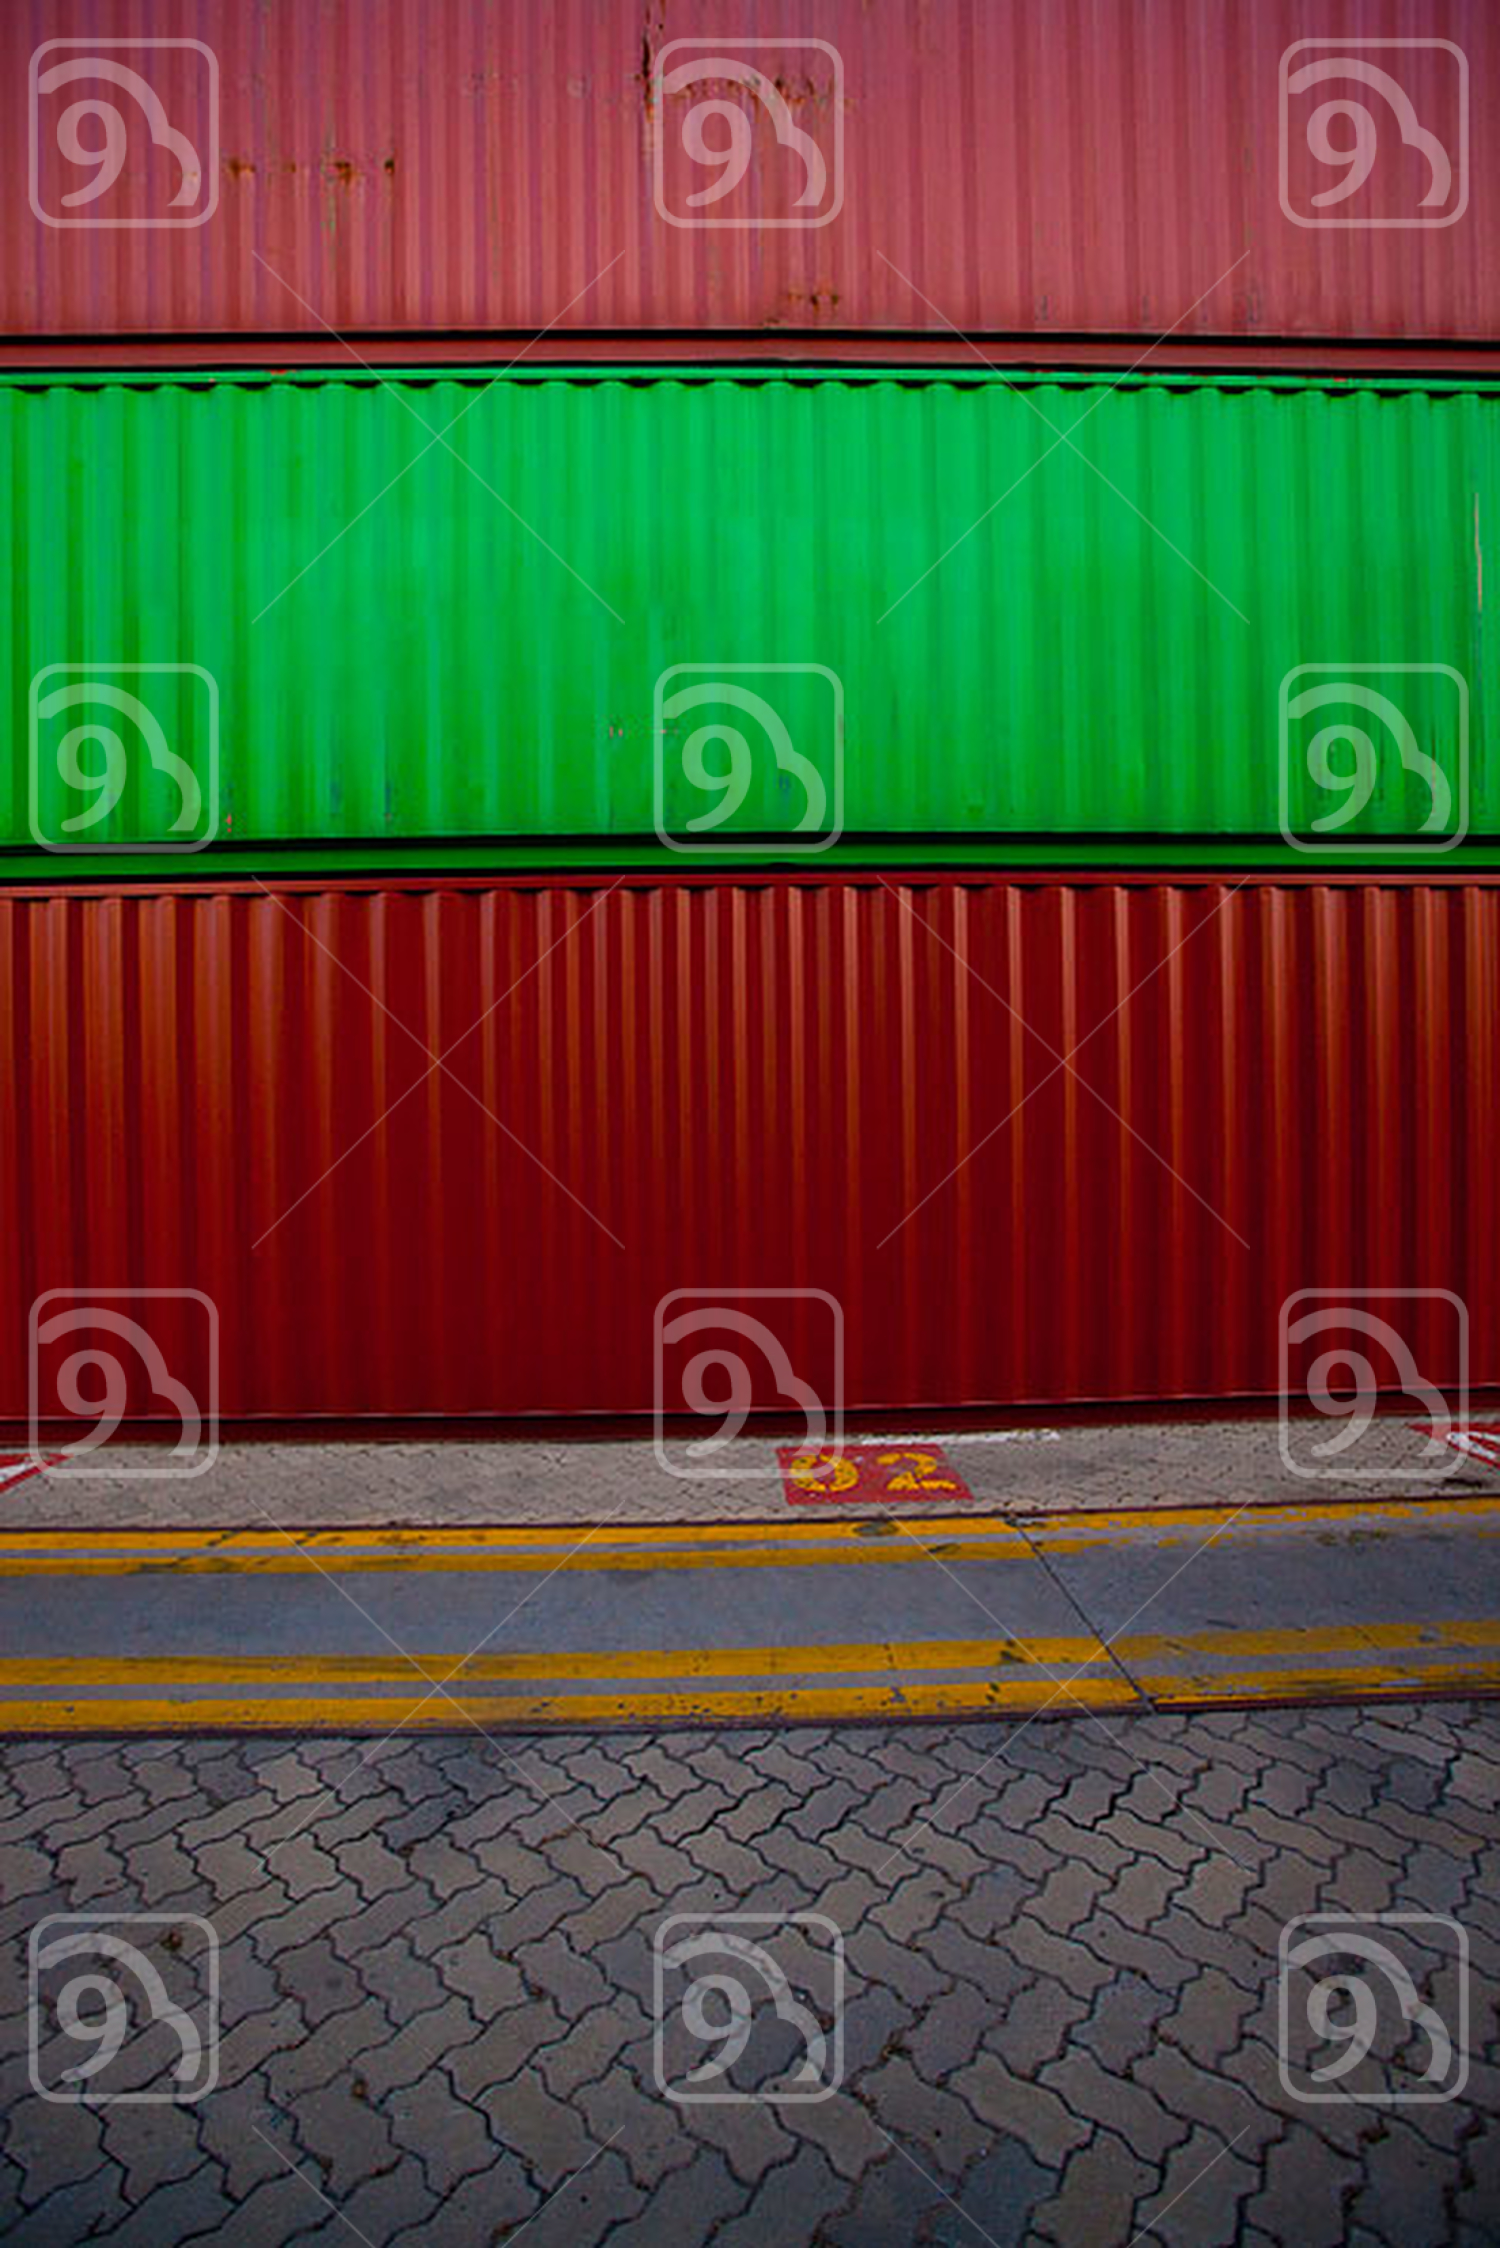 Red and green cargo containers